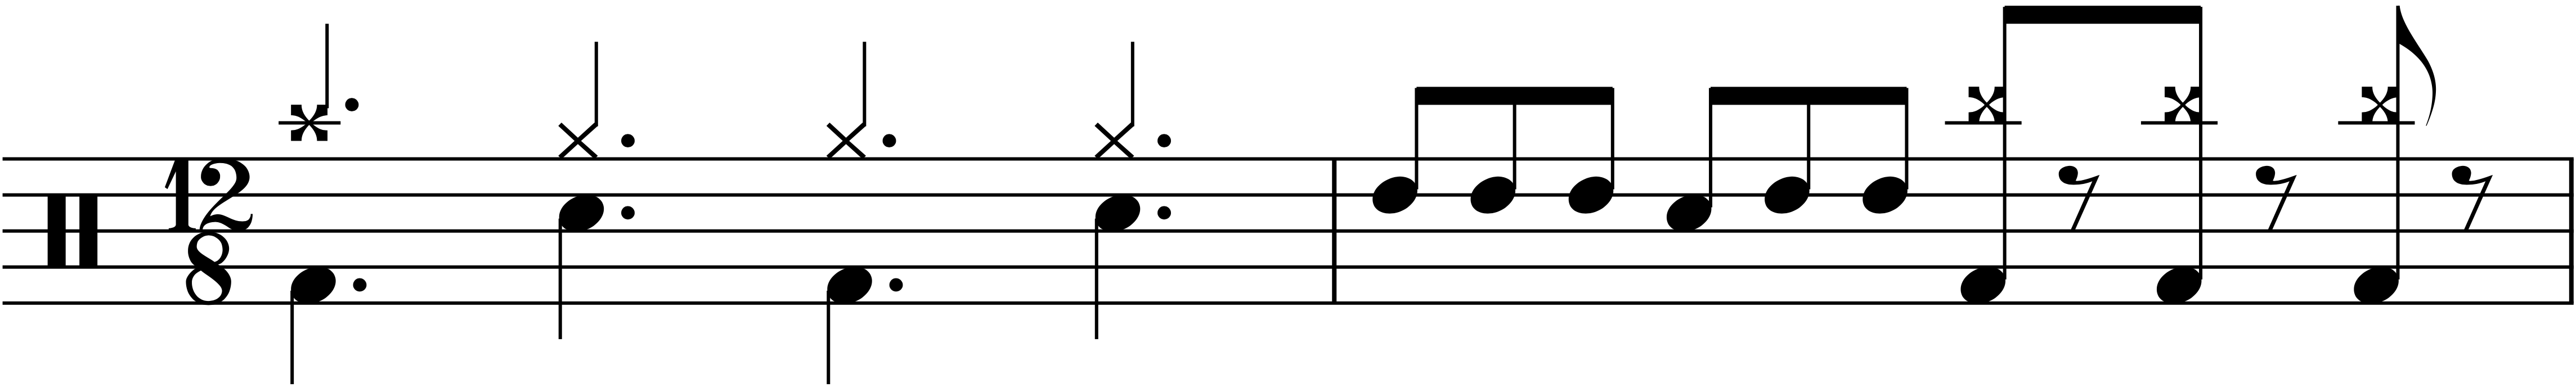 For Whom The Bell Tolls - Metallica - Drum Sheet Music